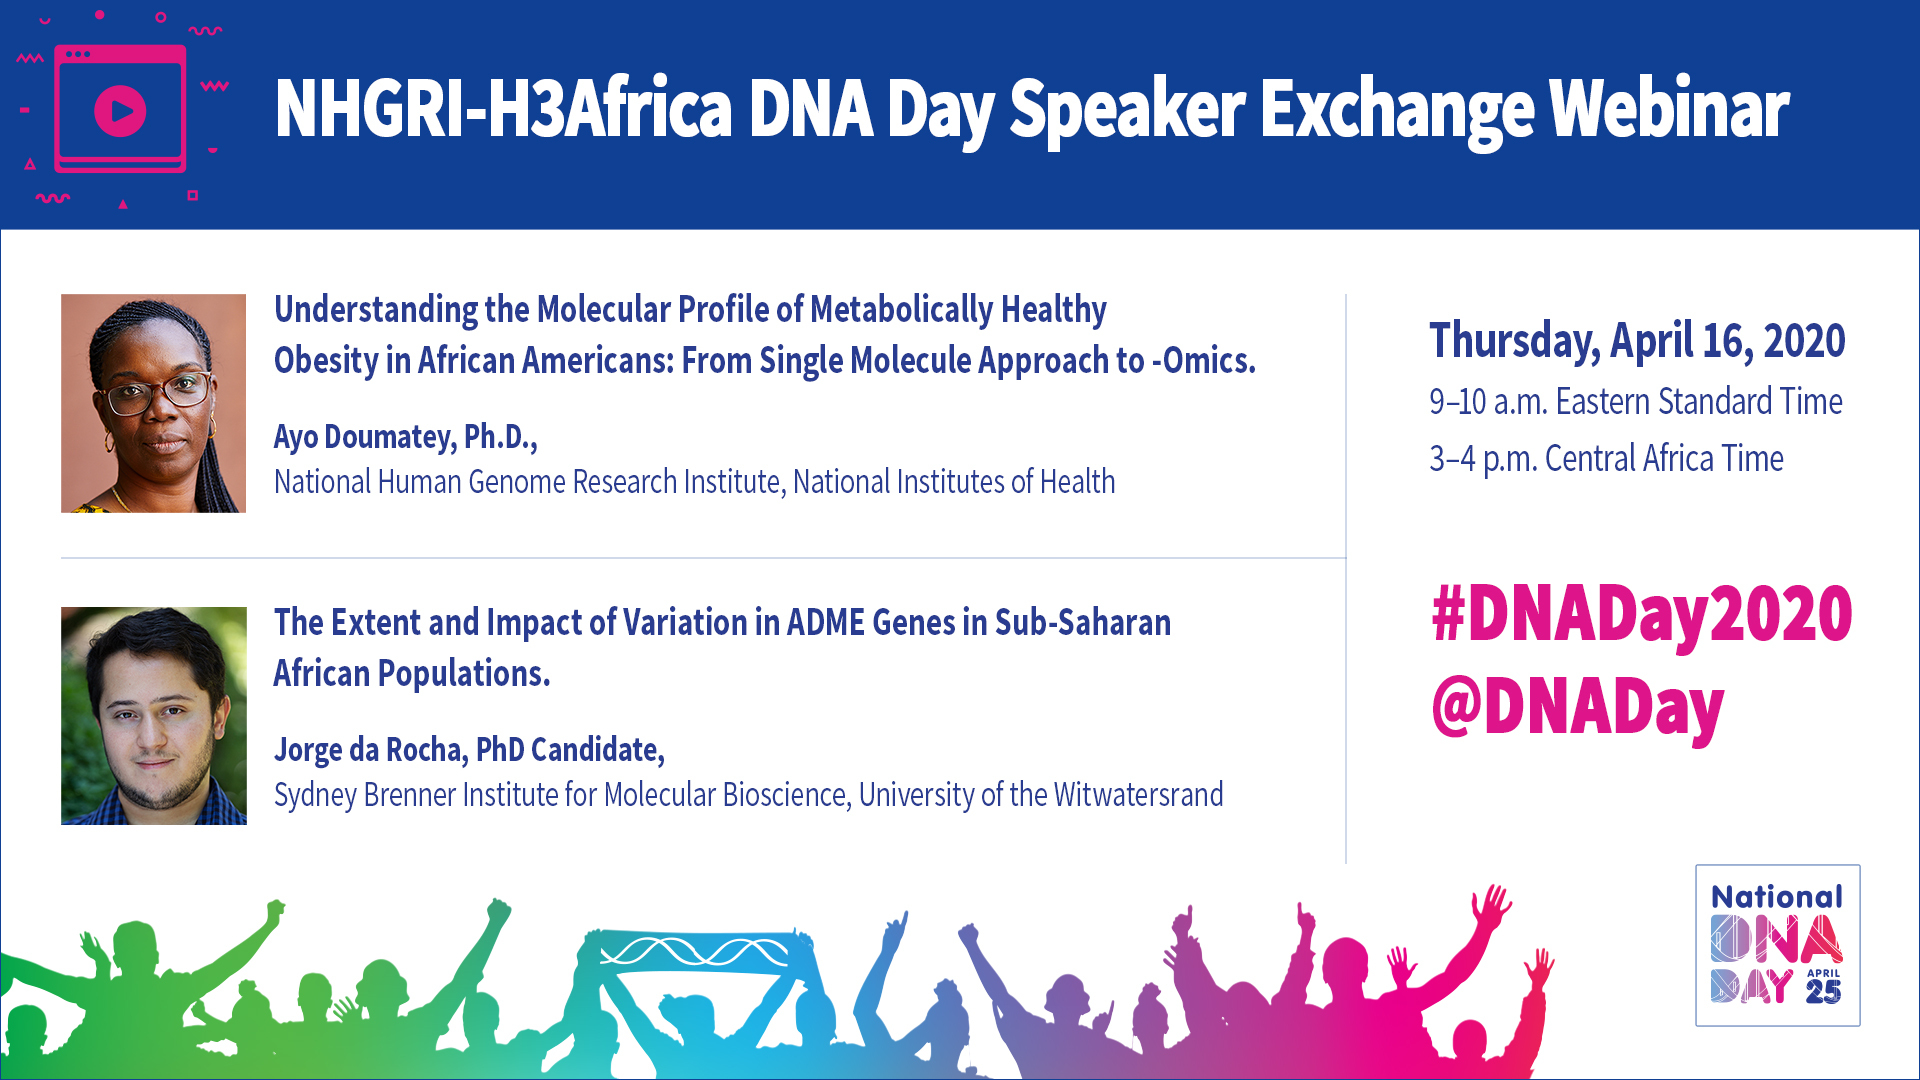 DNA Day H3Africa